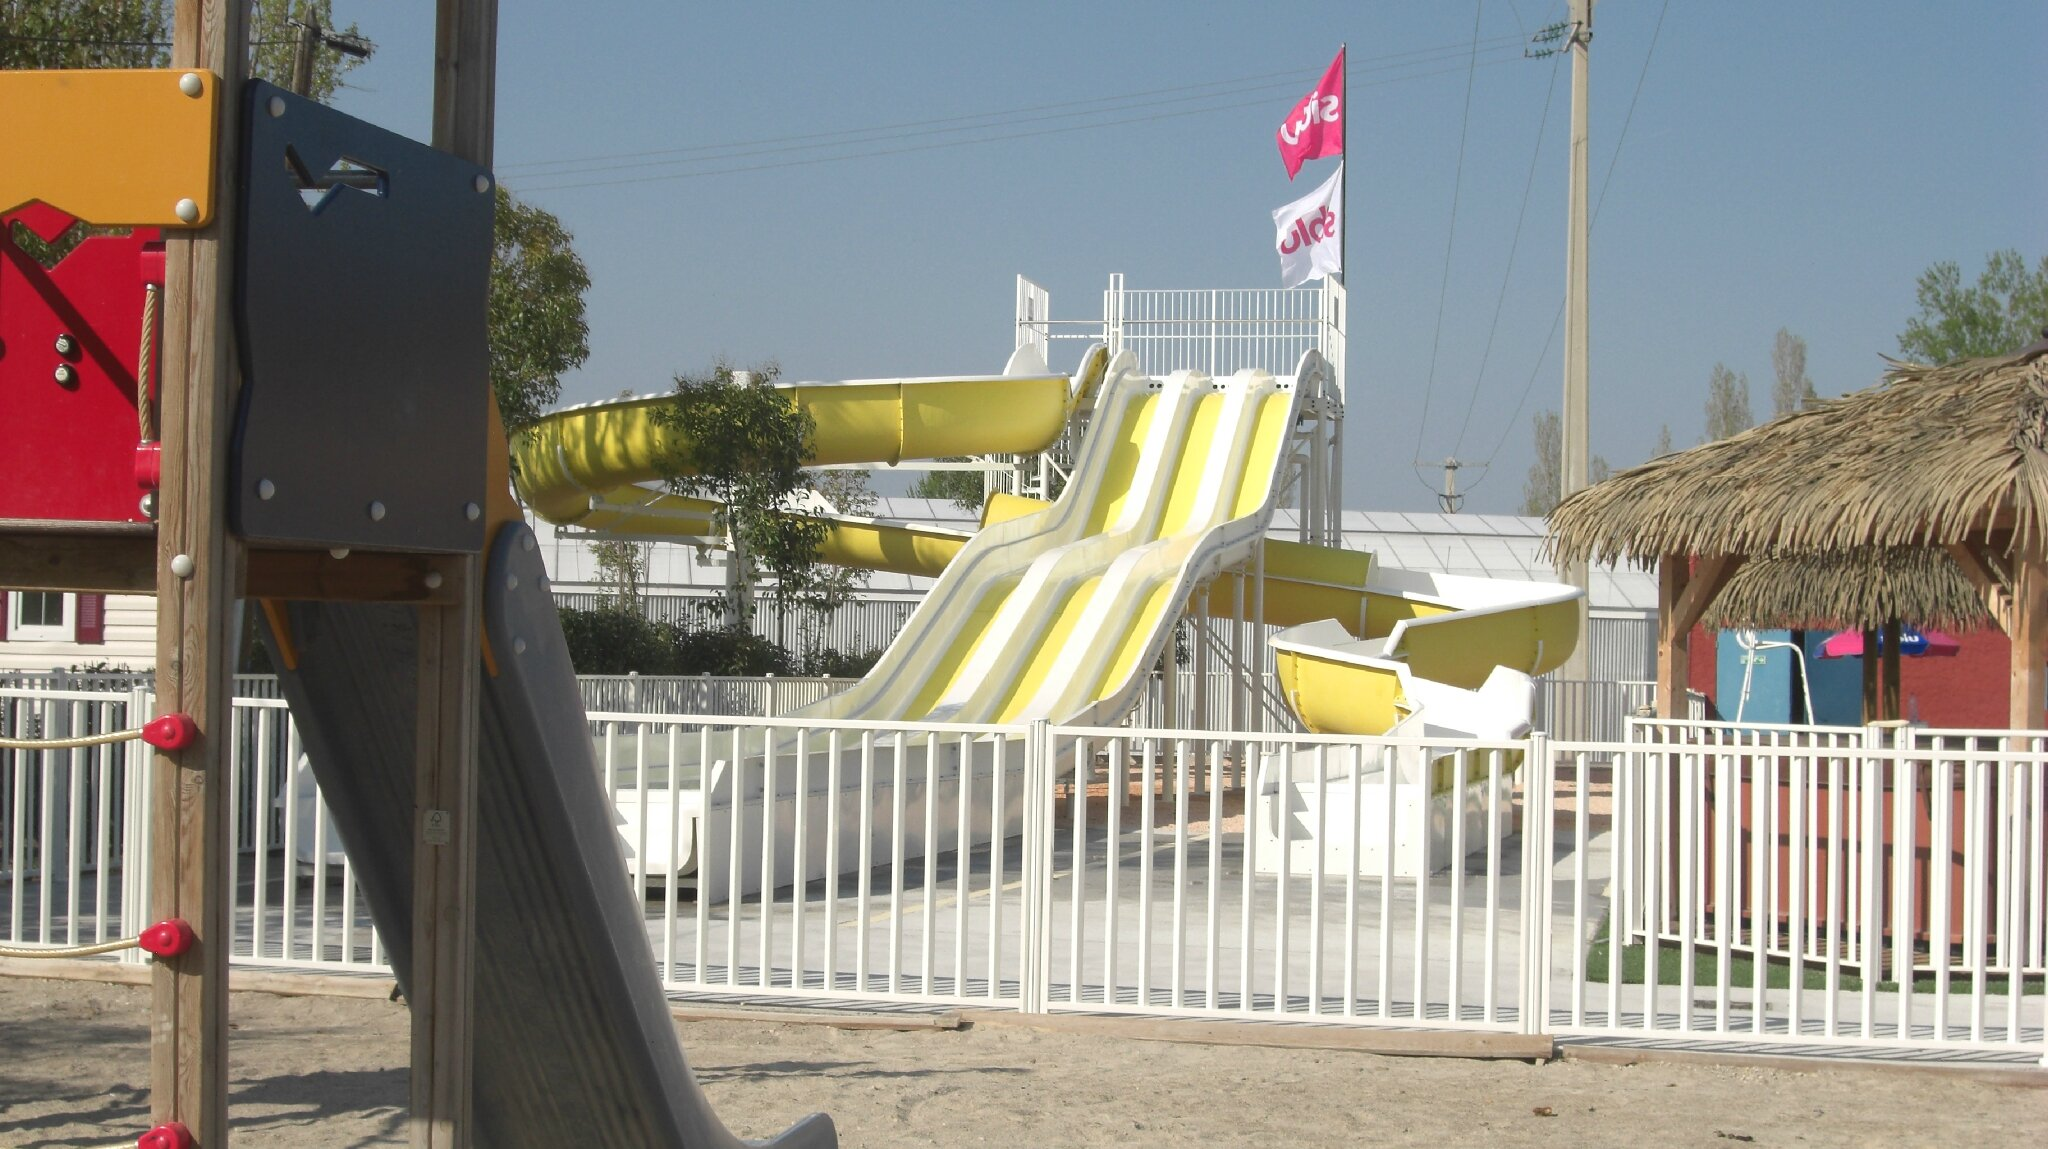 Location Mobilhome dans Camping 4****